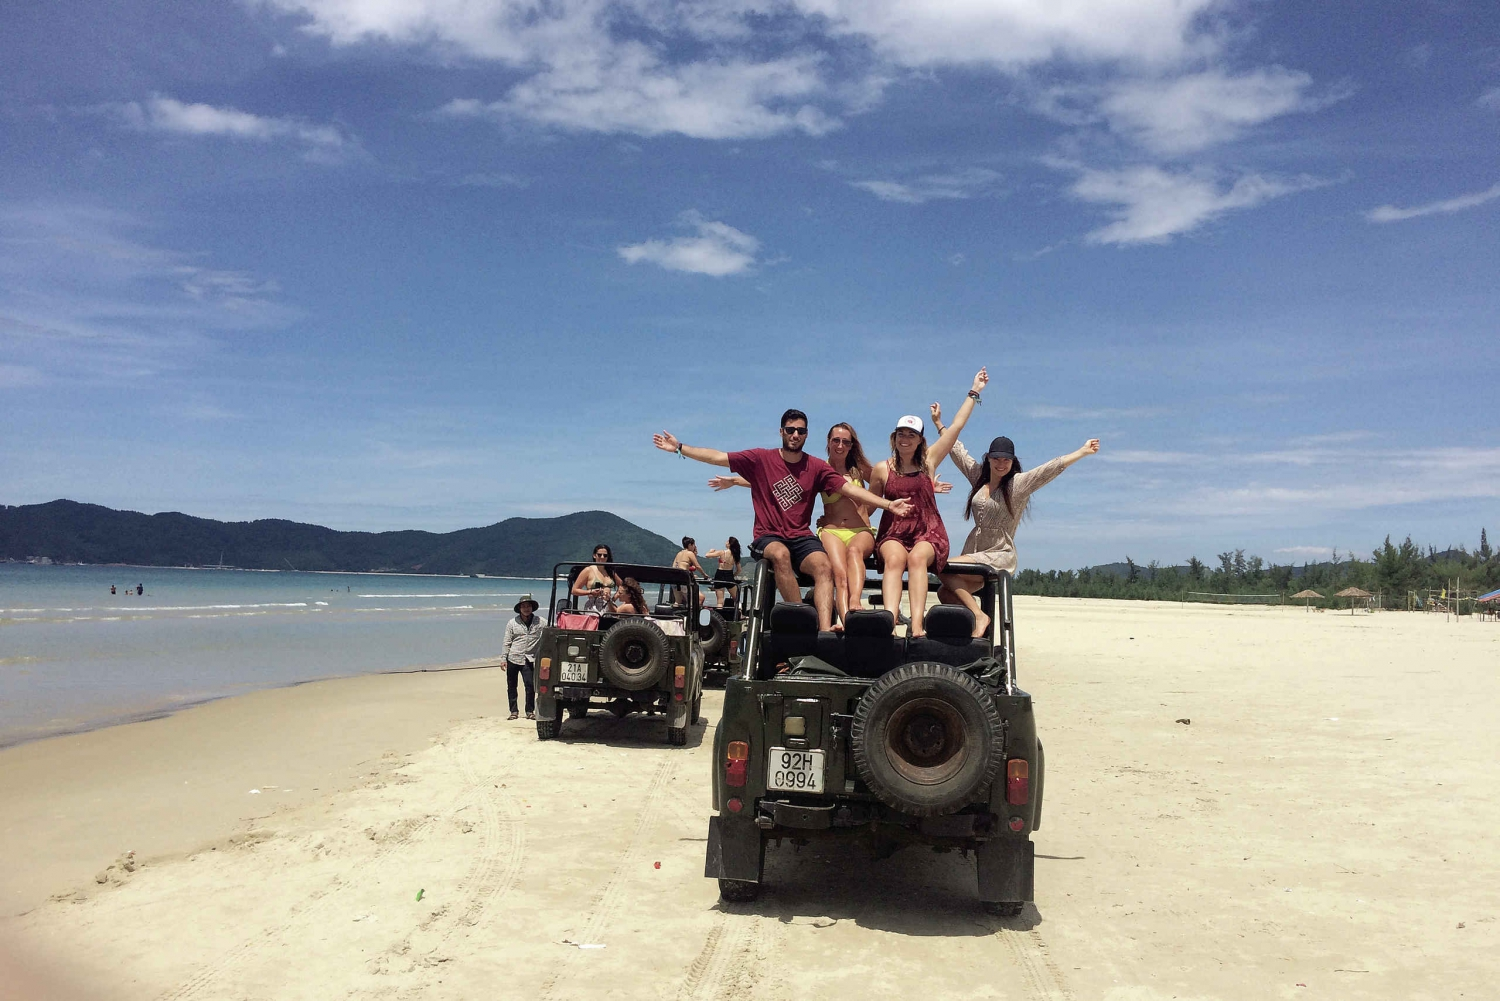 Retro Jeep Transfer from Hoi An to Hue via the Hai Van Pass